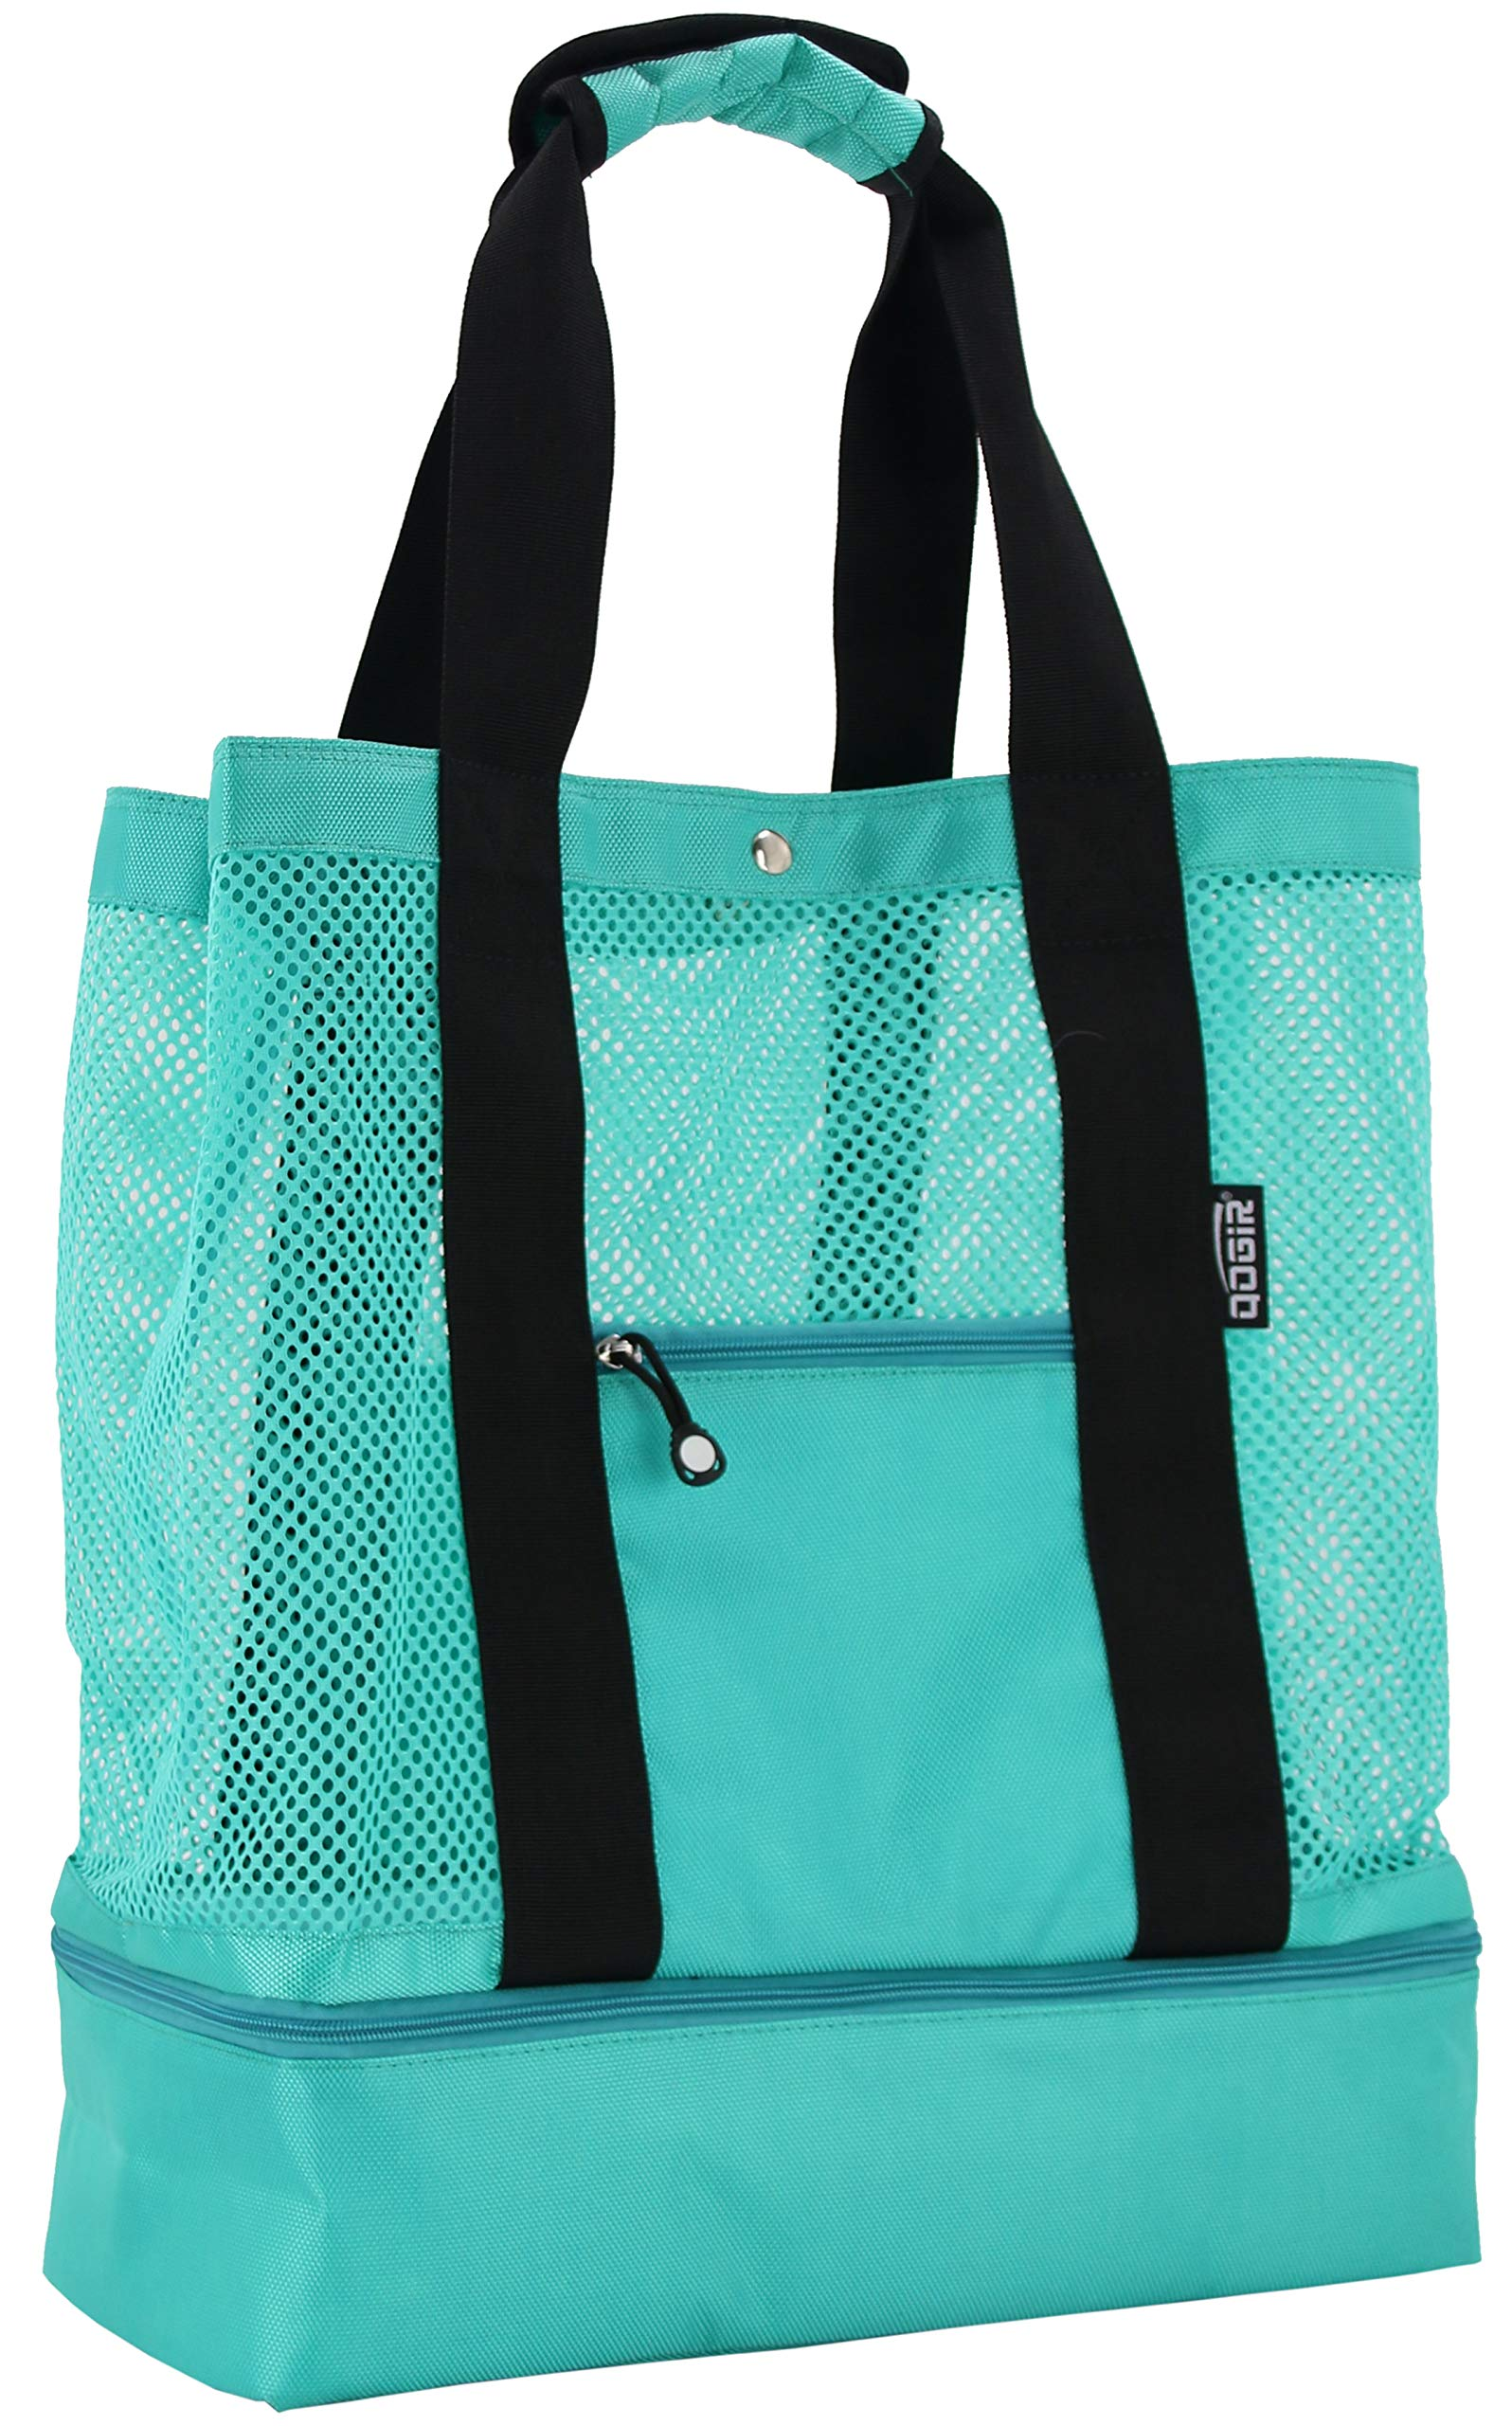 QOGiR Mesh Beach Bag Tote with Insulated Picnic Cooler Bottom - Large, Durable and Light Weight (Green)